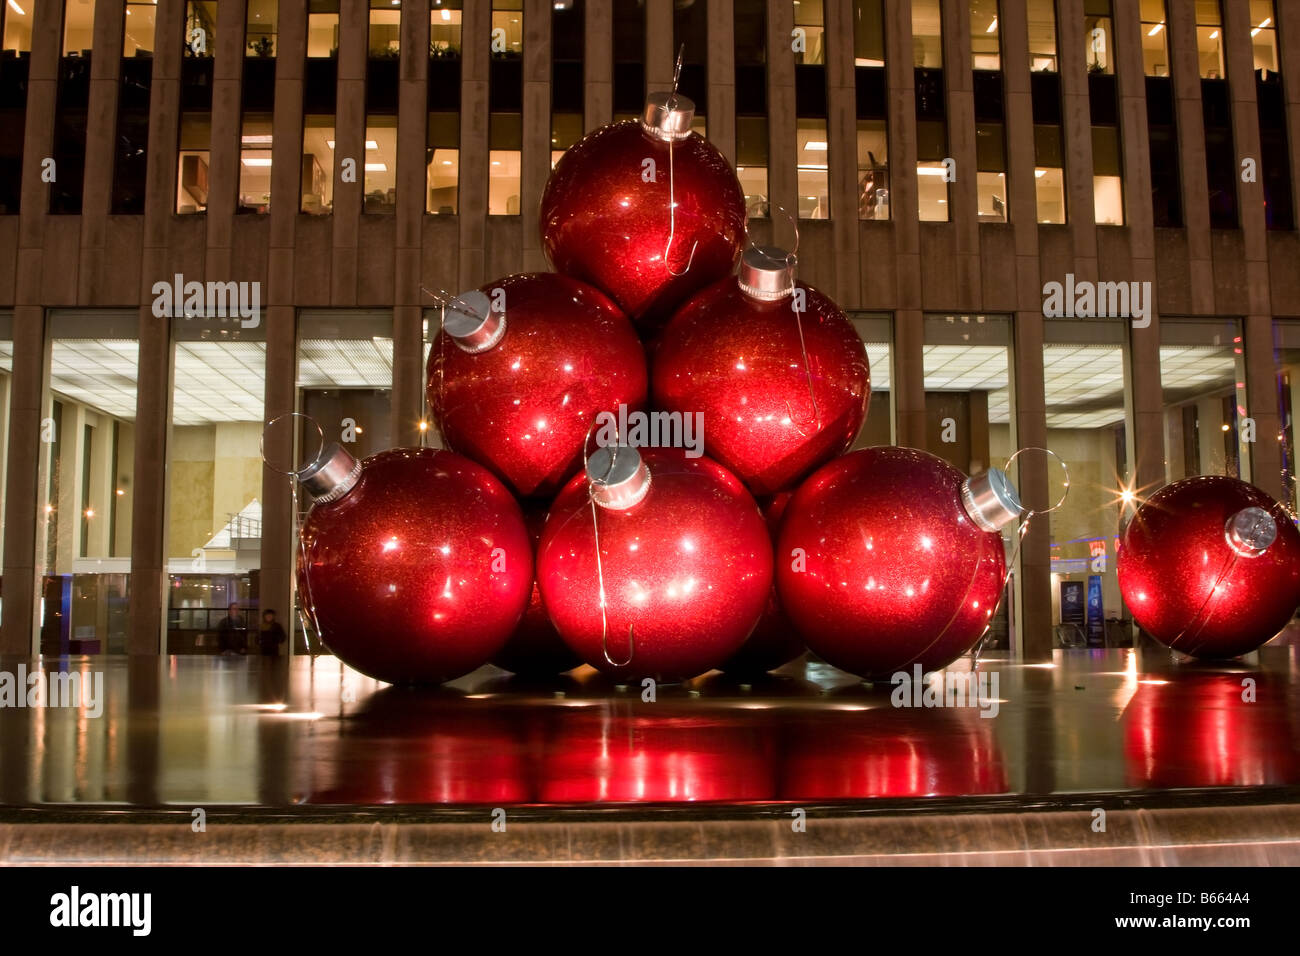 Big red balls as ornaments for the Christmas tree as an art exhibit ...